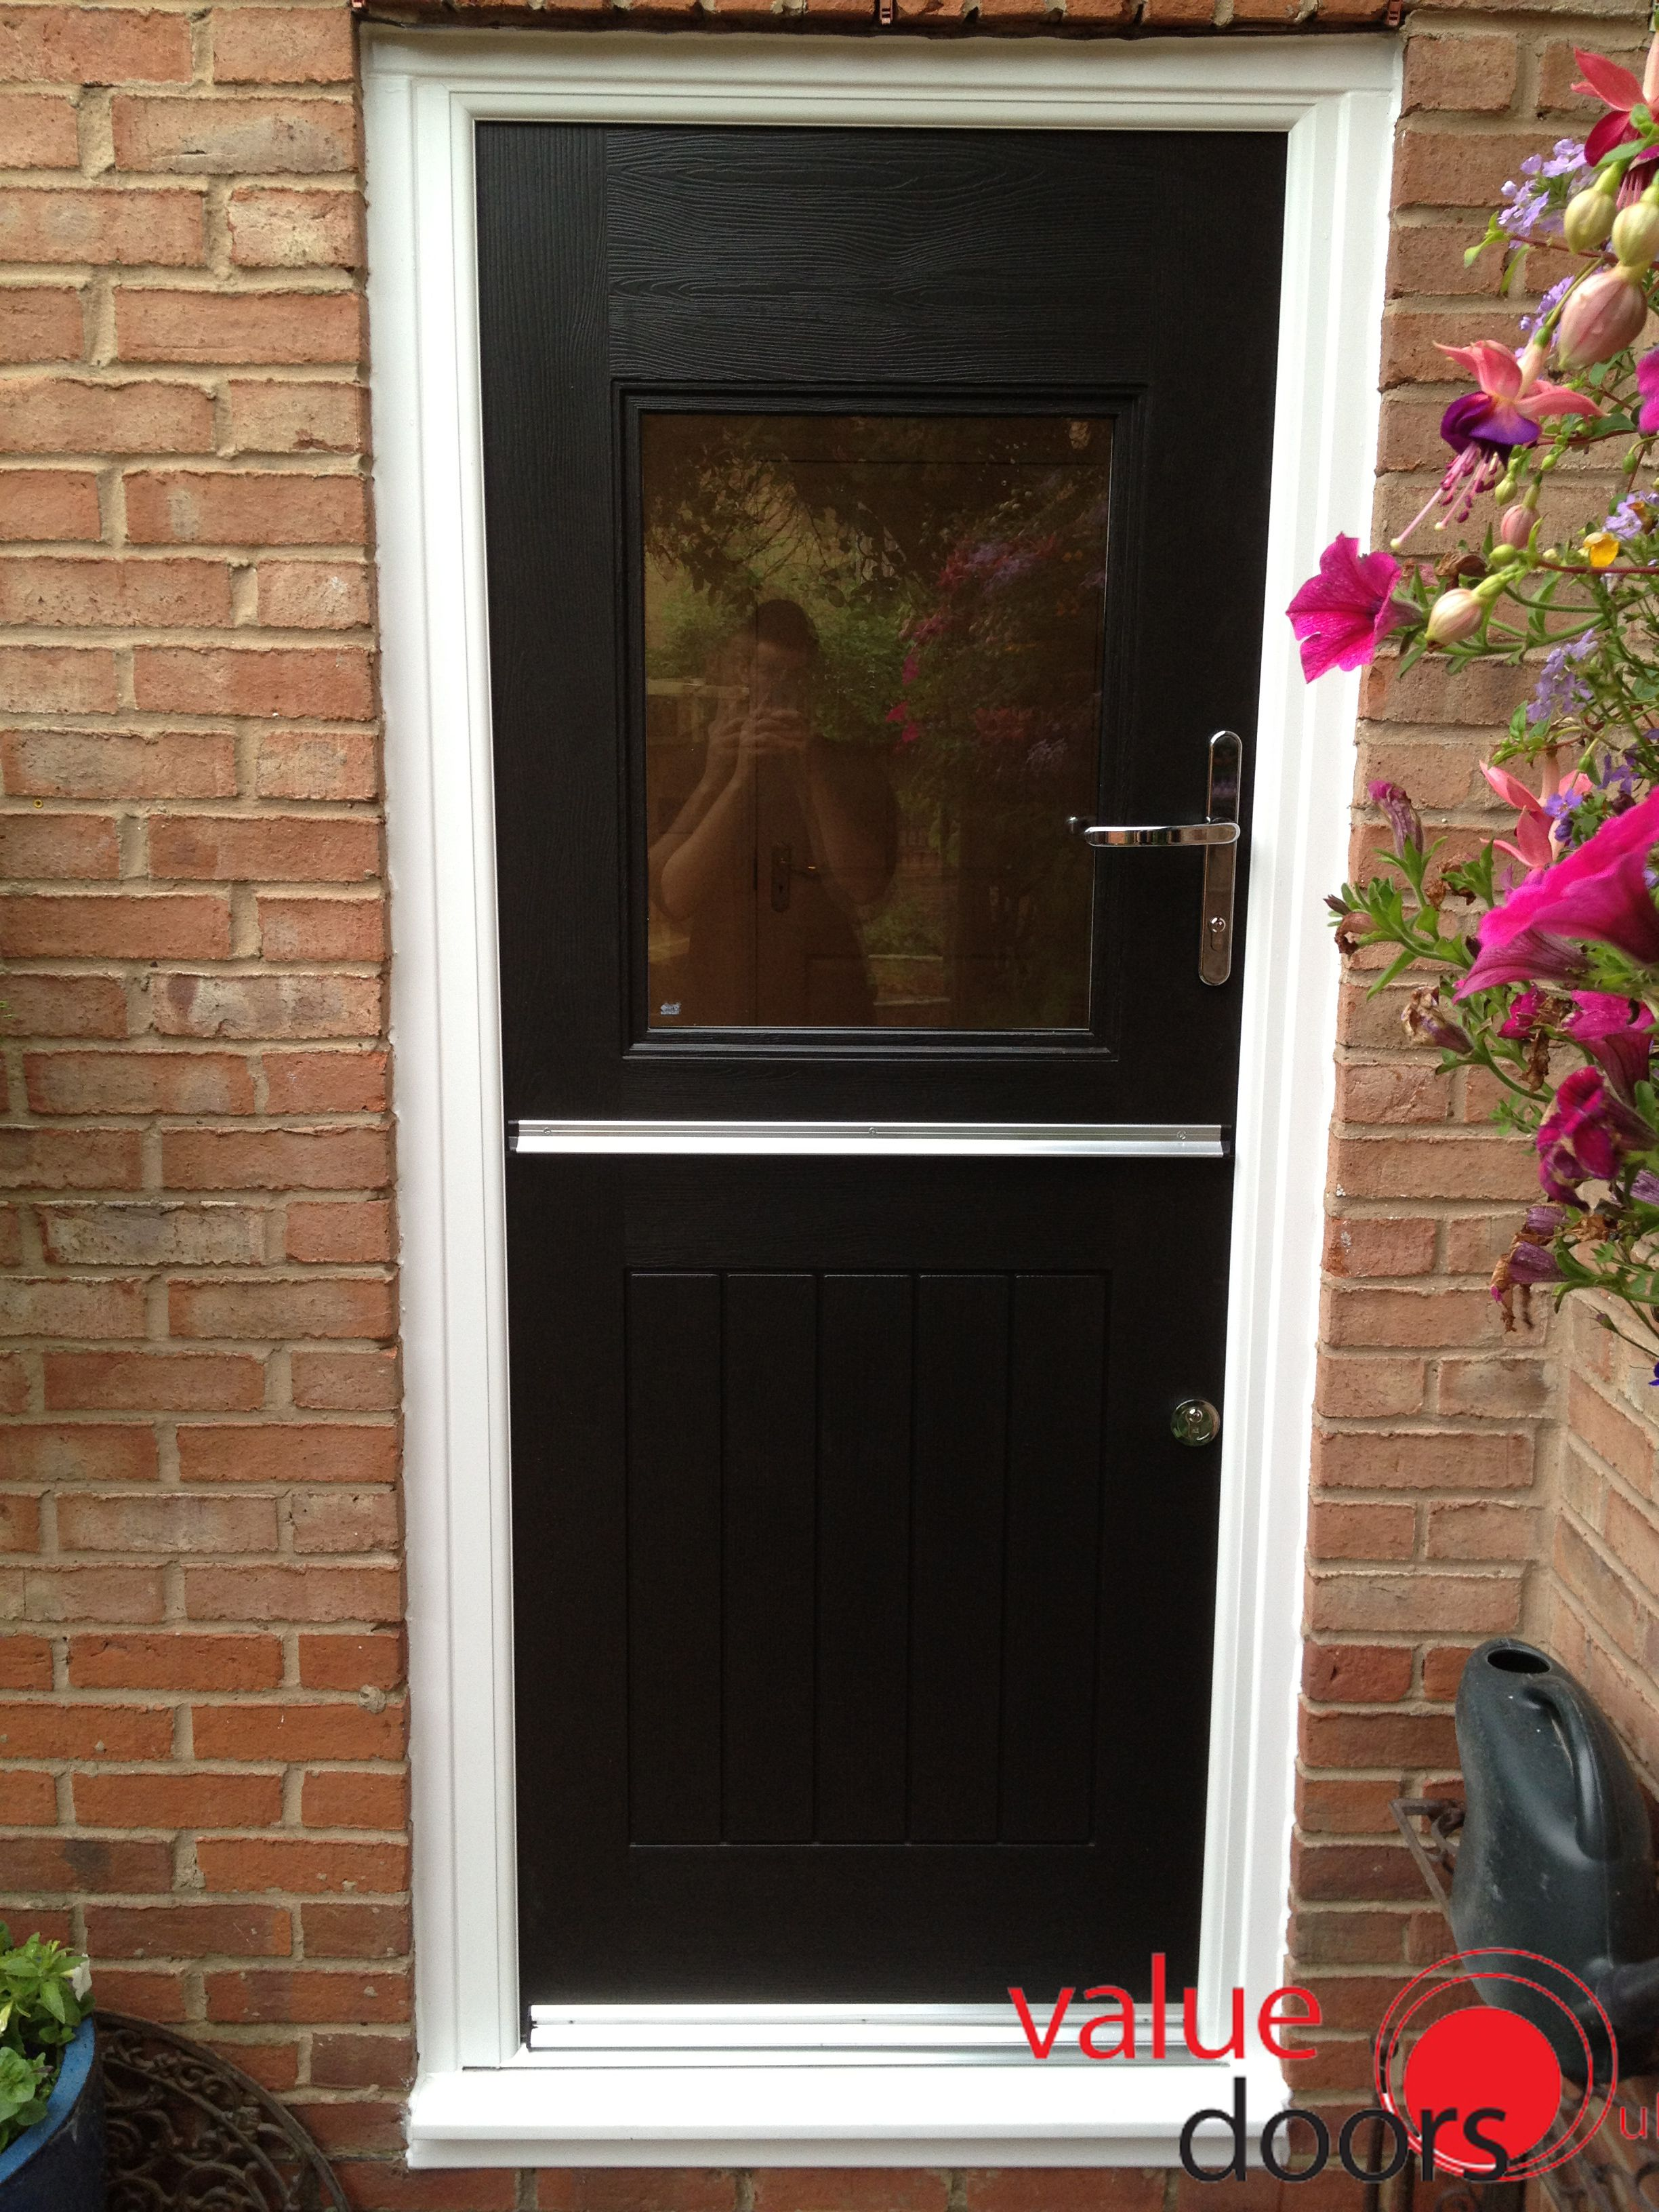 Did you know we also sell stylish Stable doors for houses. Get your Composite Stable Door here ... & Did you know we also sell stylish Stable doors for houses. Get your ...